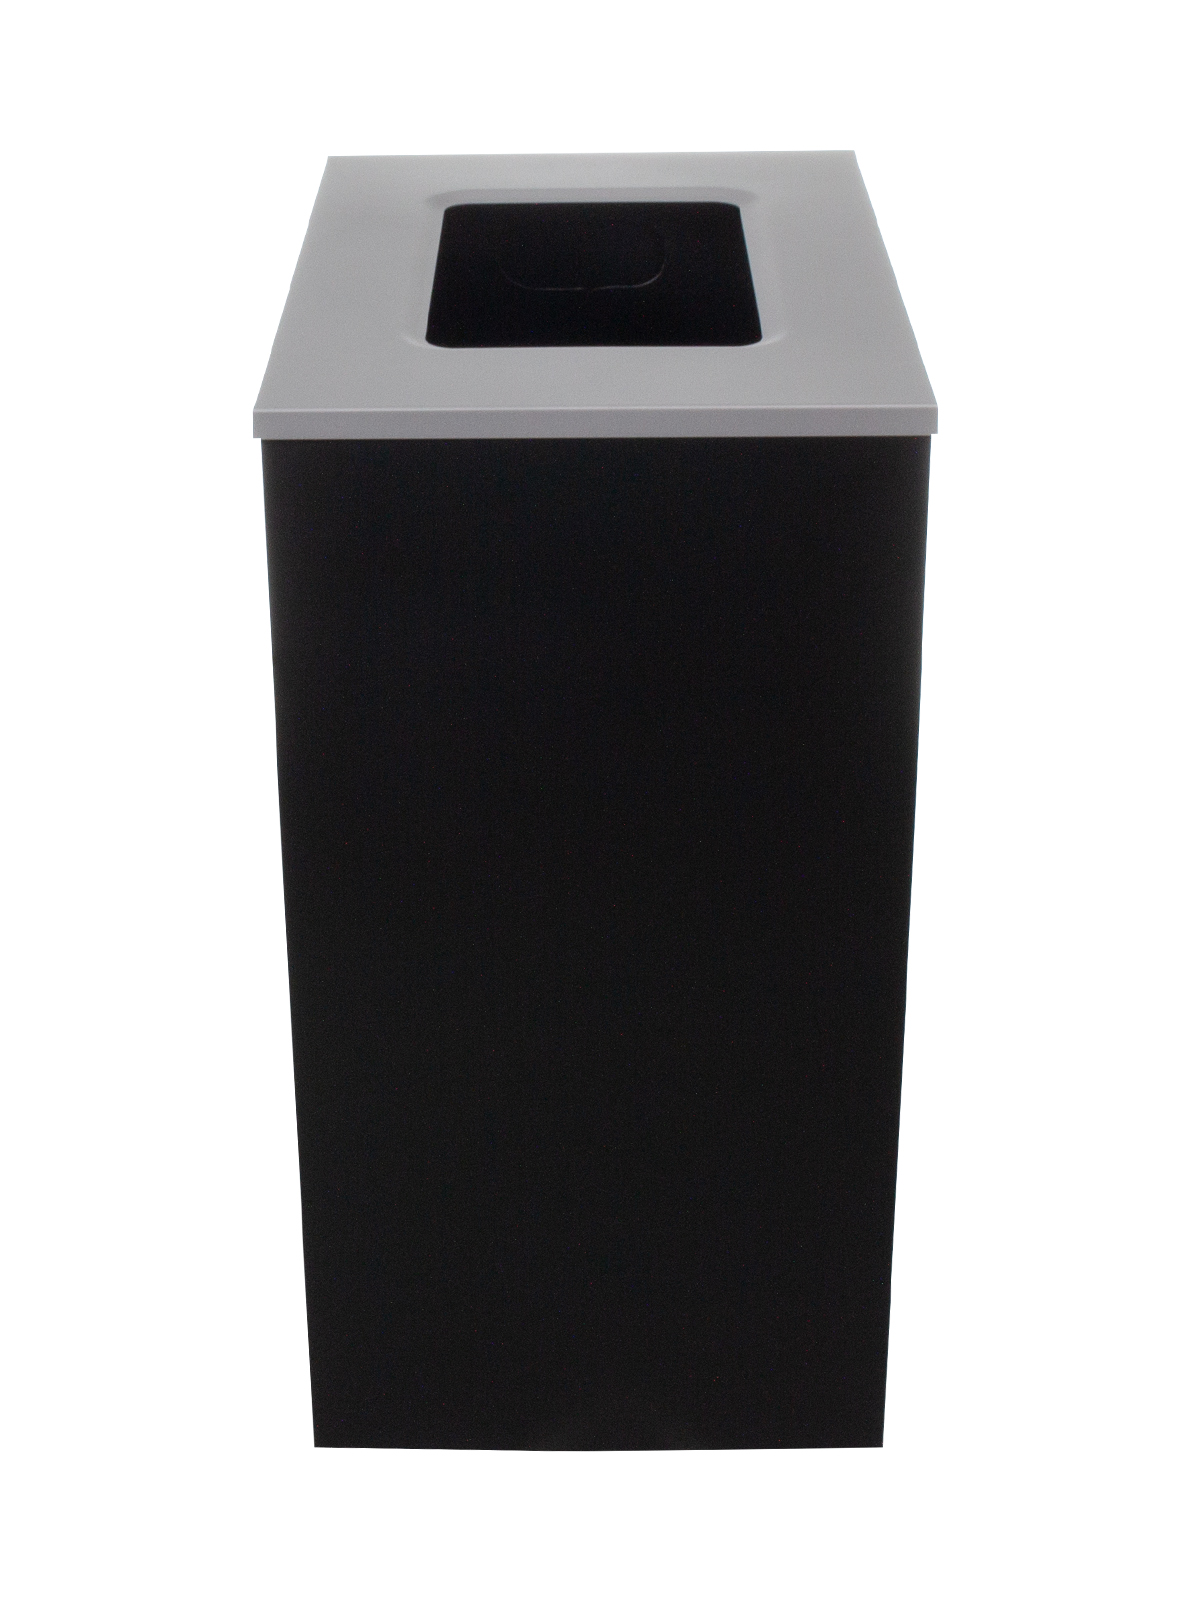 SPECTRUM - Single - Cube Xl - Waste - Full - Black-Silver